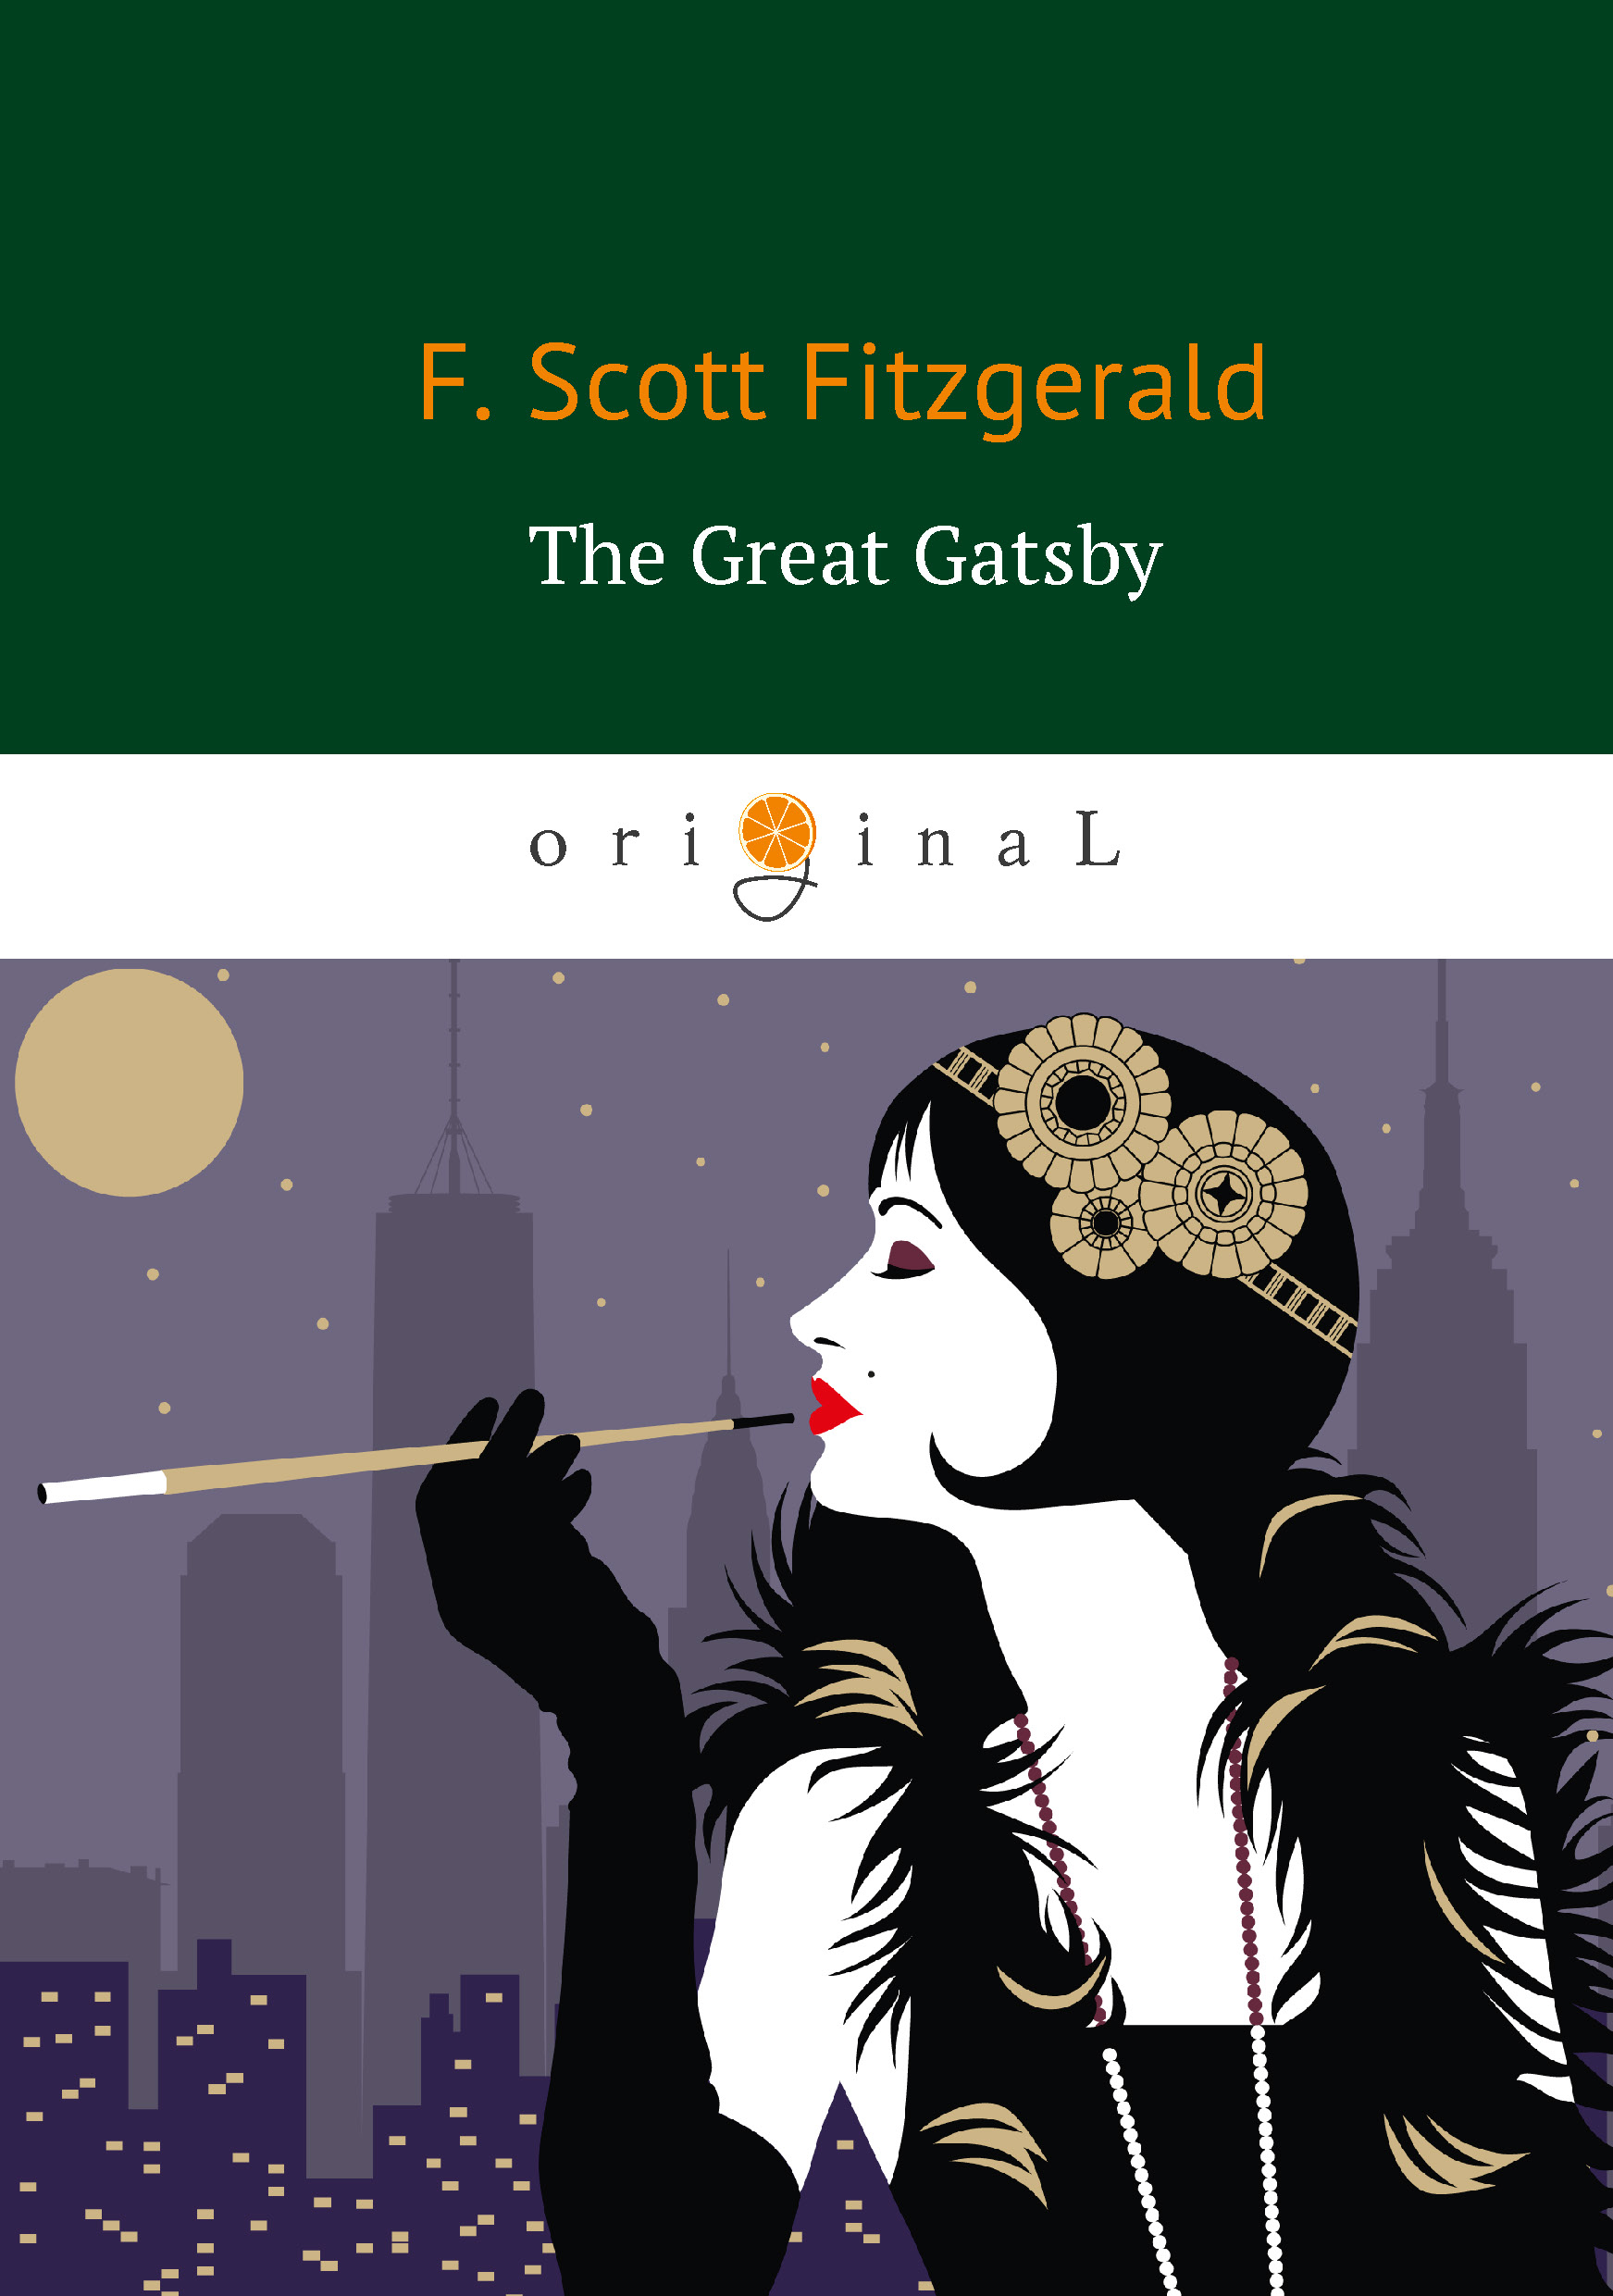 f scott fitzgerald s the great gatsby The great gatsby marked a striking advance in fitzgerald's technique, utilizing a complex structure and a controlled narrative point of view fitzgerald's achievement received critical praise, but sales of gatsby were disappointing, though the stage and movie rights brought additional income.